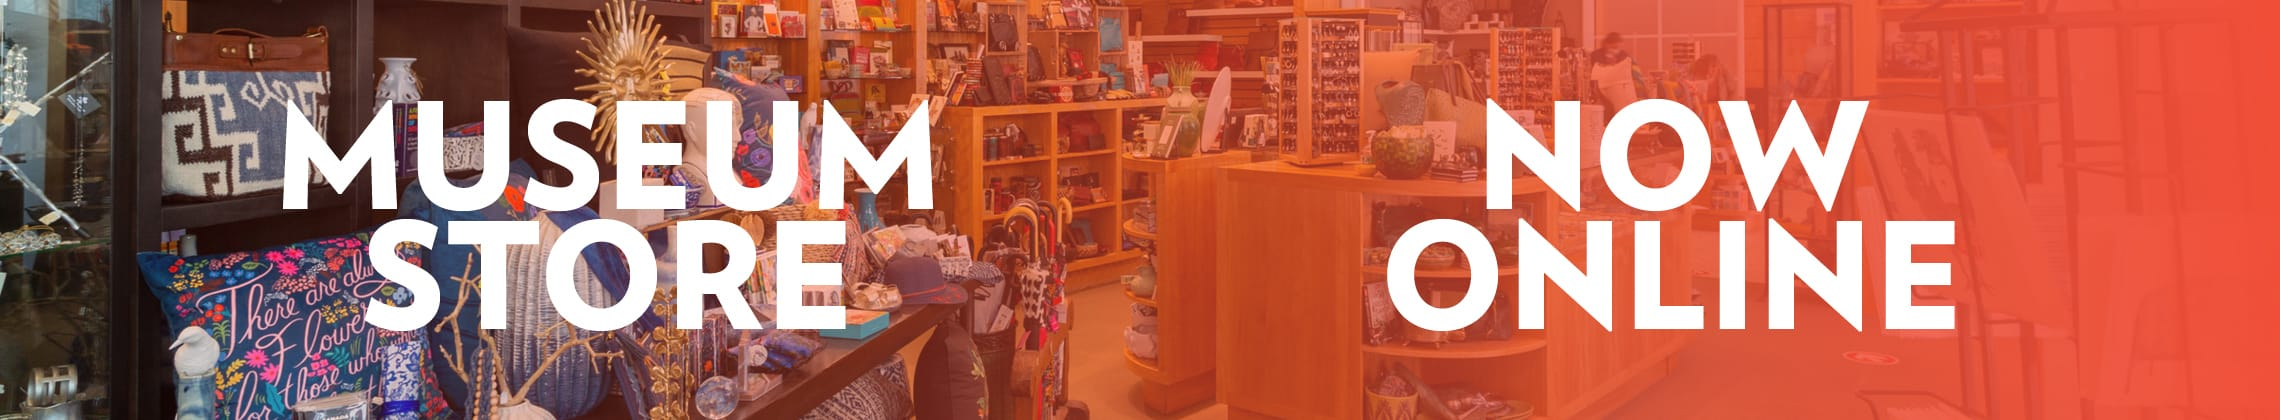 Museum Store now online